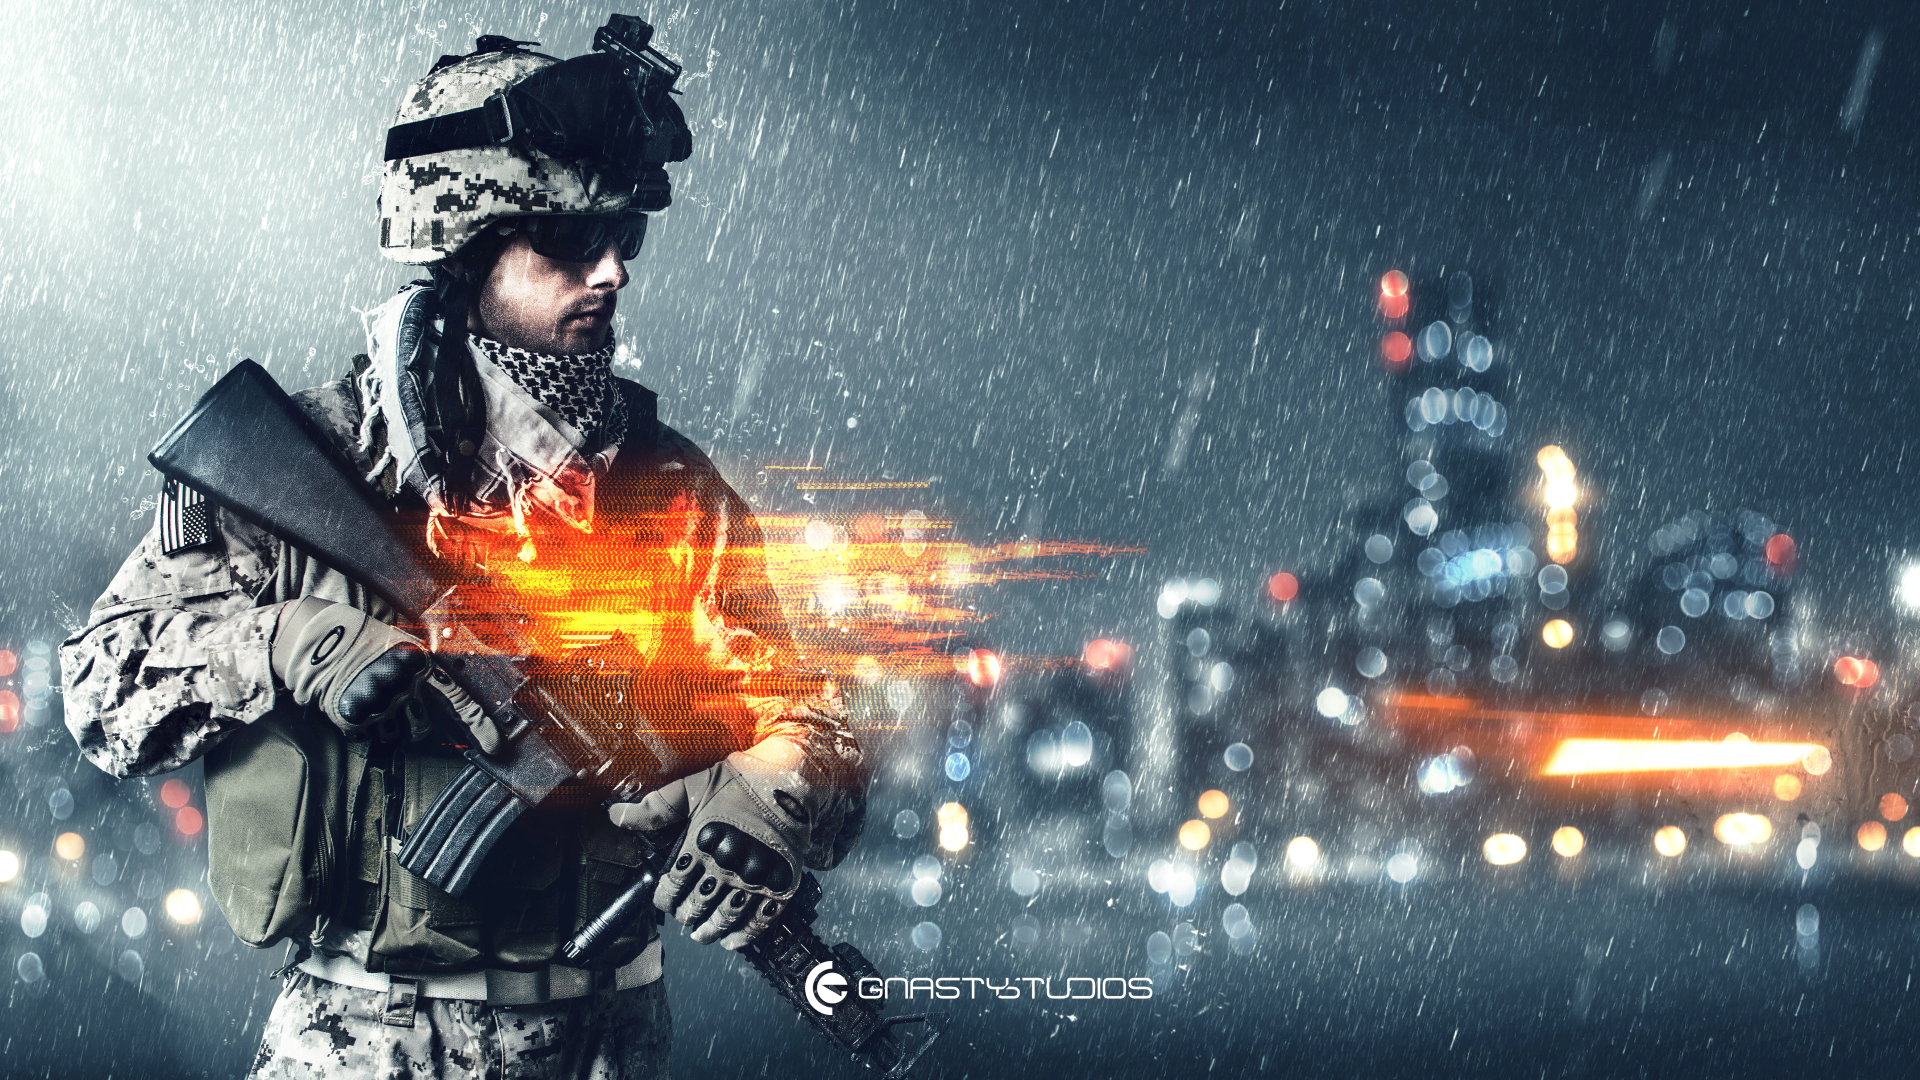 Battlefield 4 fan art by nordlingart on deviantart - Bf4 wallpaper ...